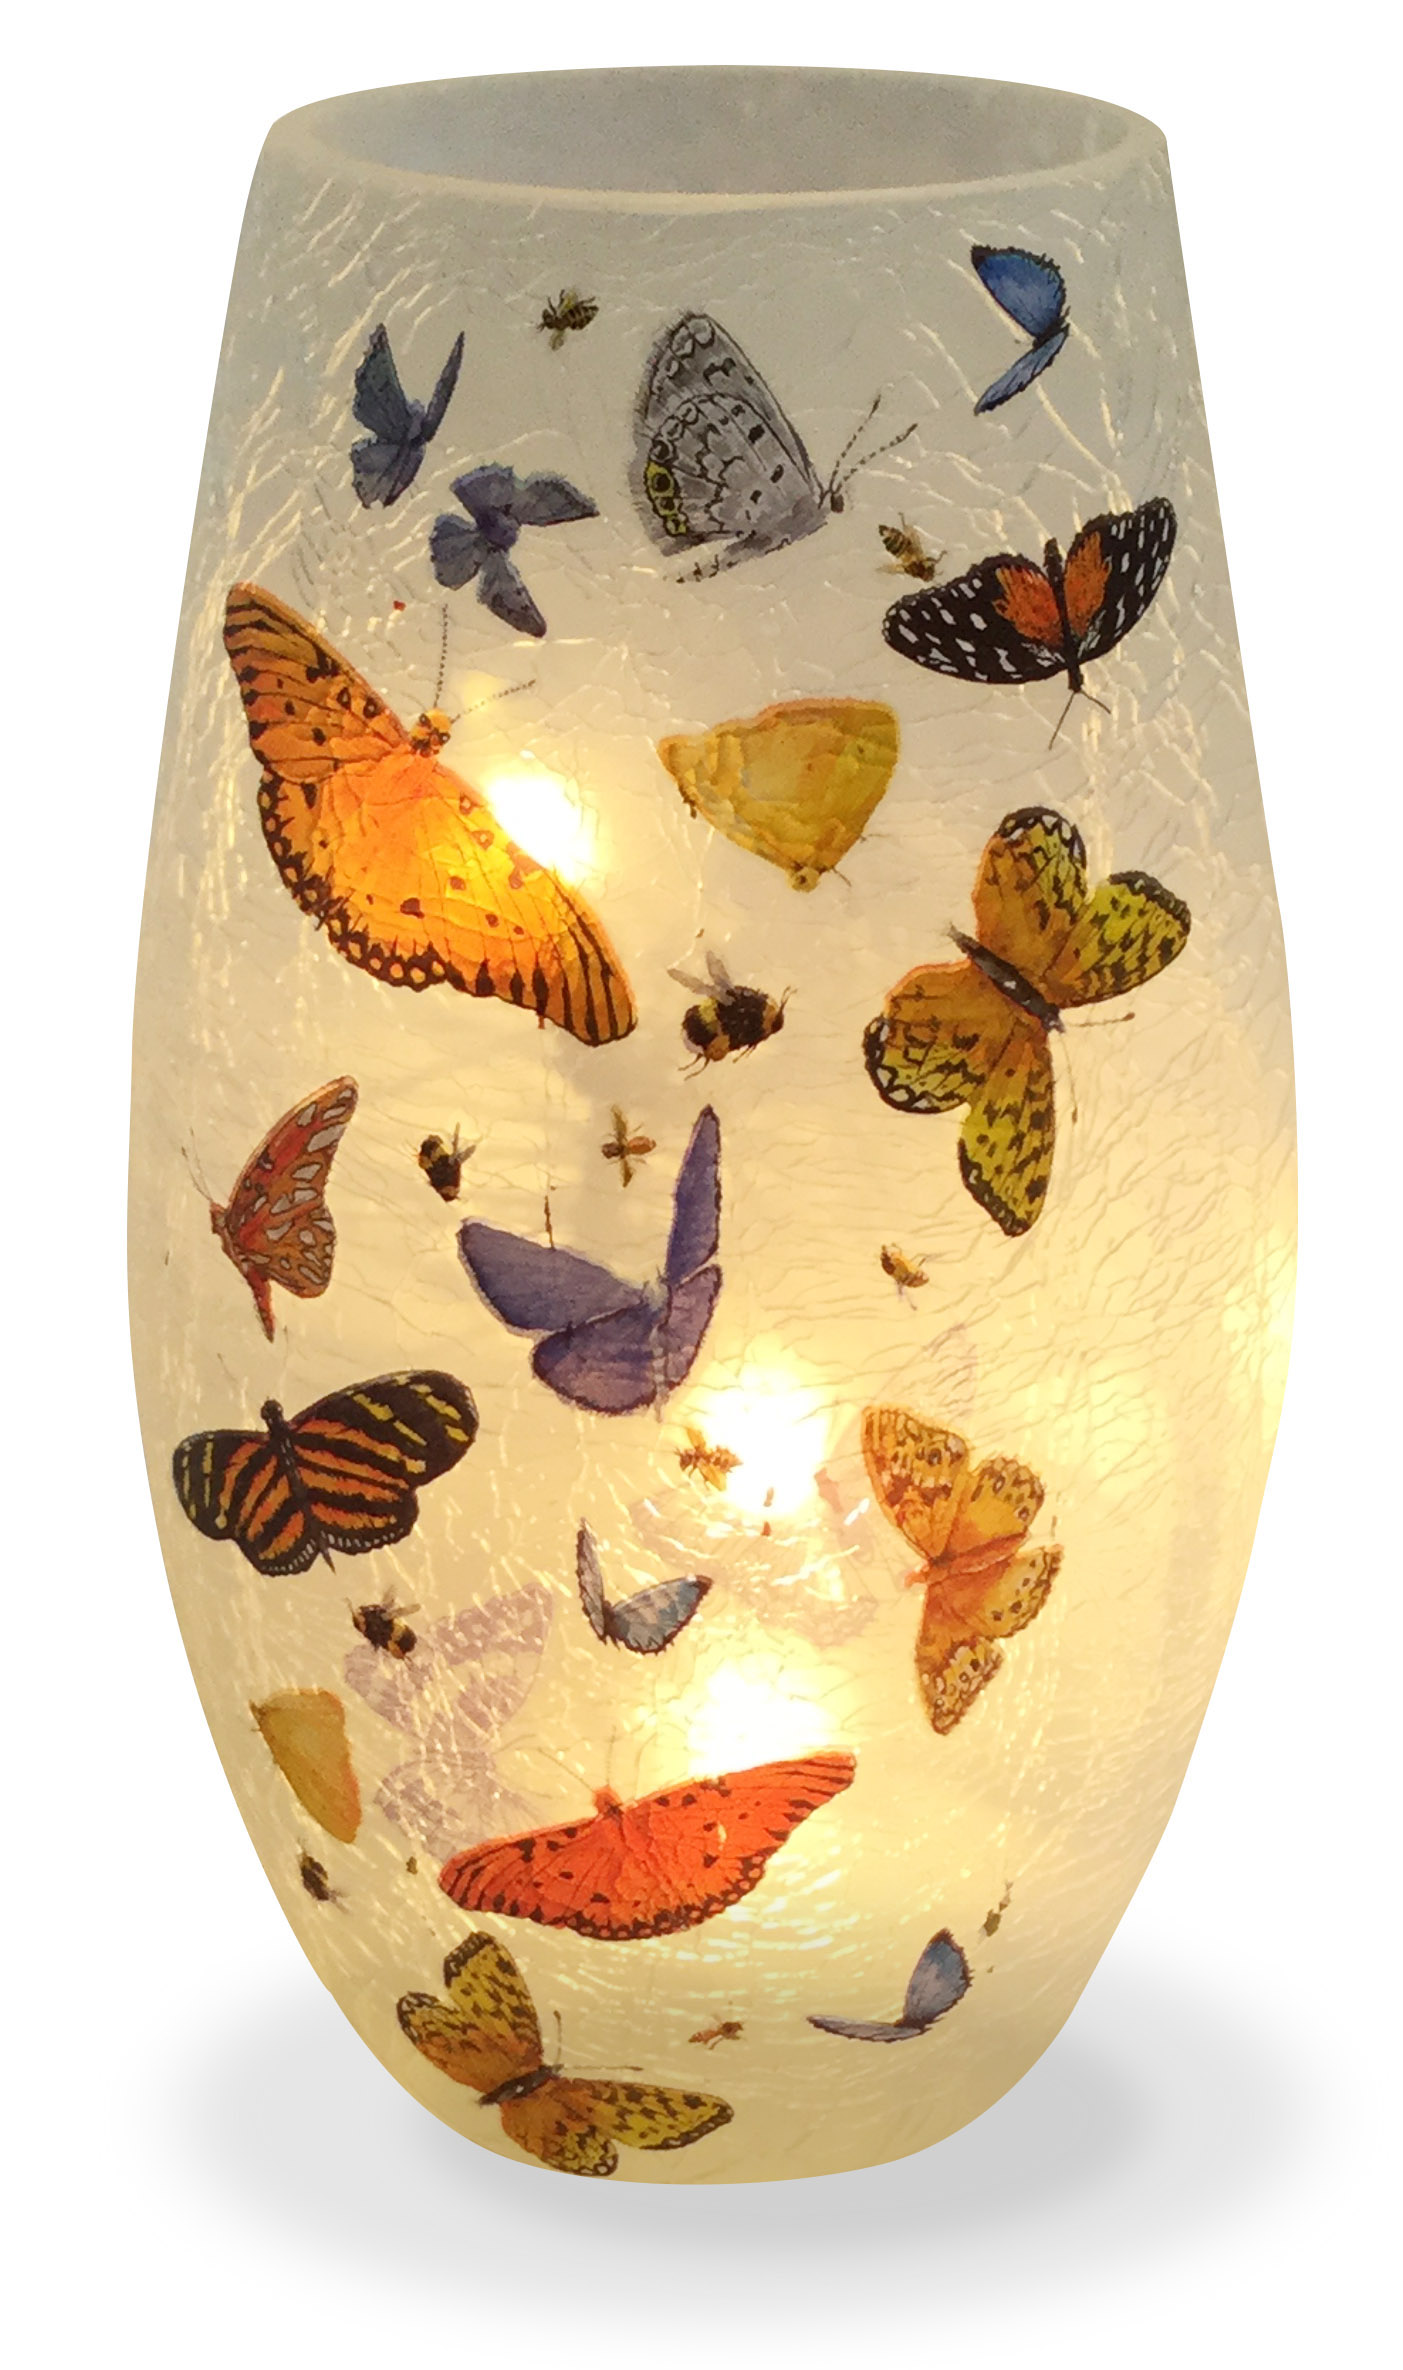 Stony creek frosted glass 7 vase butterflies mirranme reviewsmspy